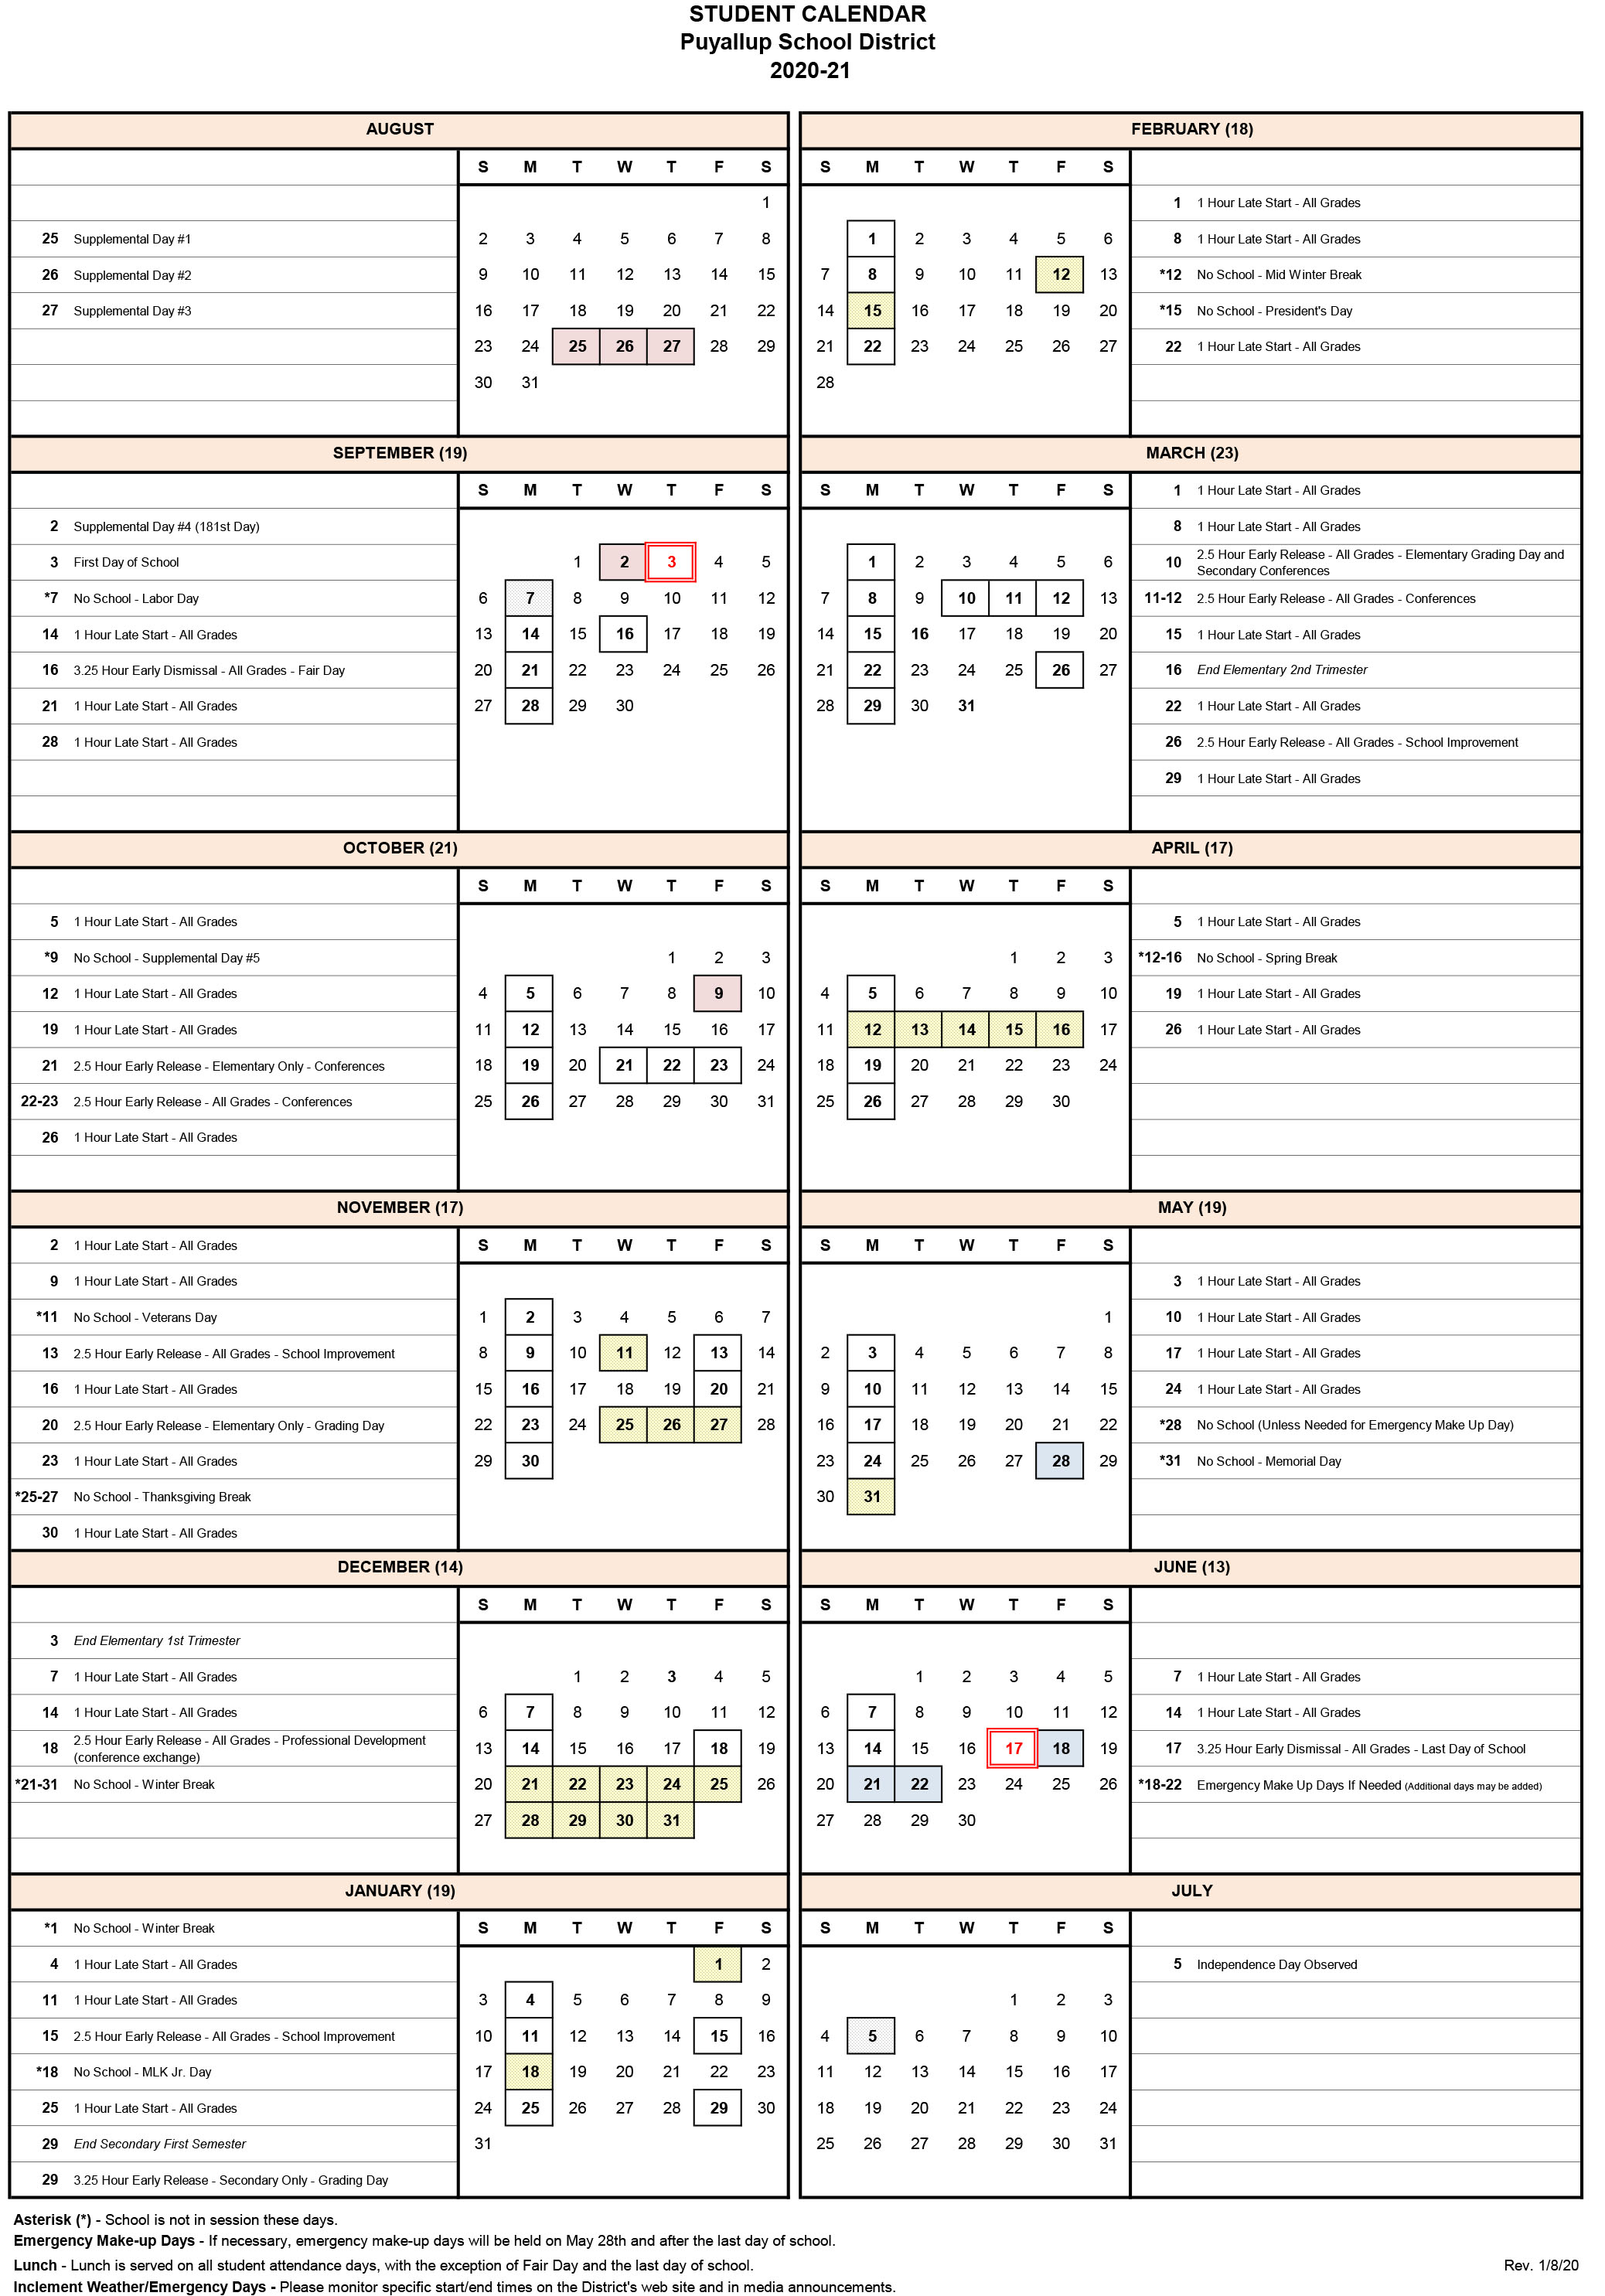 2020-2021 Student Calendar Approved - Puyallup School District with Post Falls High School Calendar